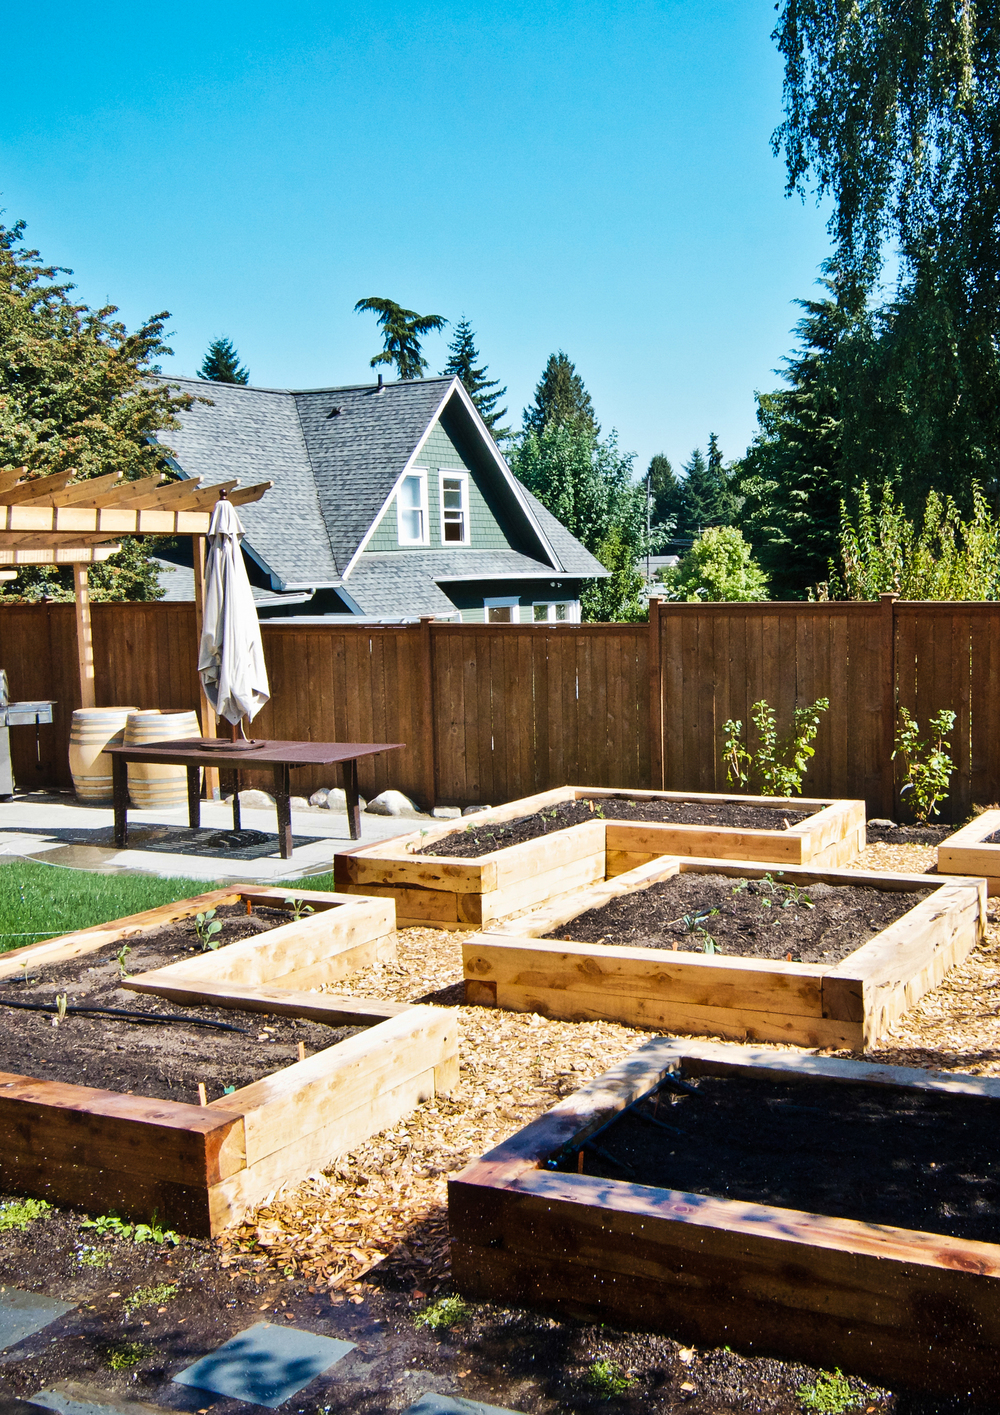 South Seattle Edible Landscape_Seattle Urban Farm Company_Raised Beds.jpg